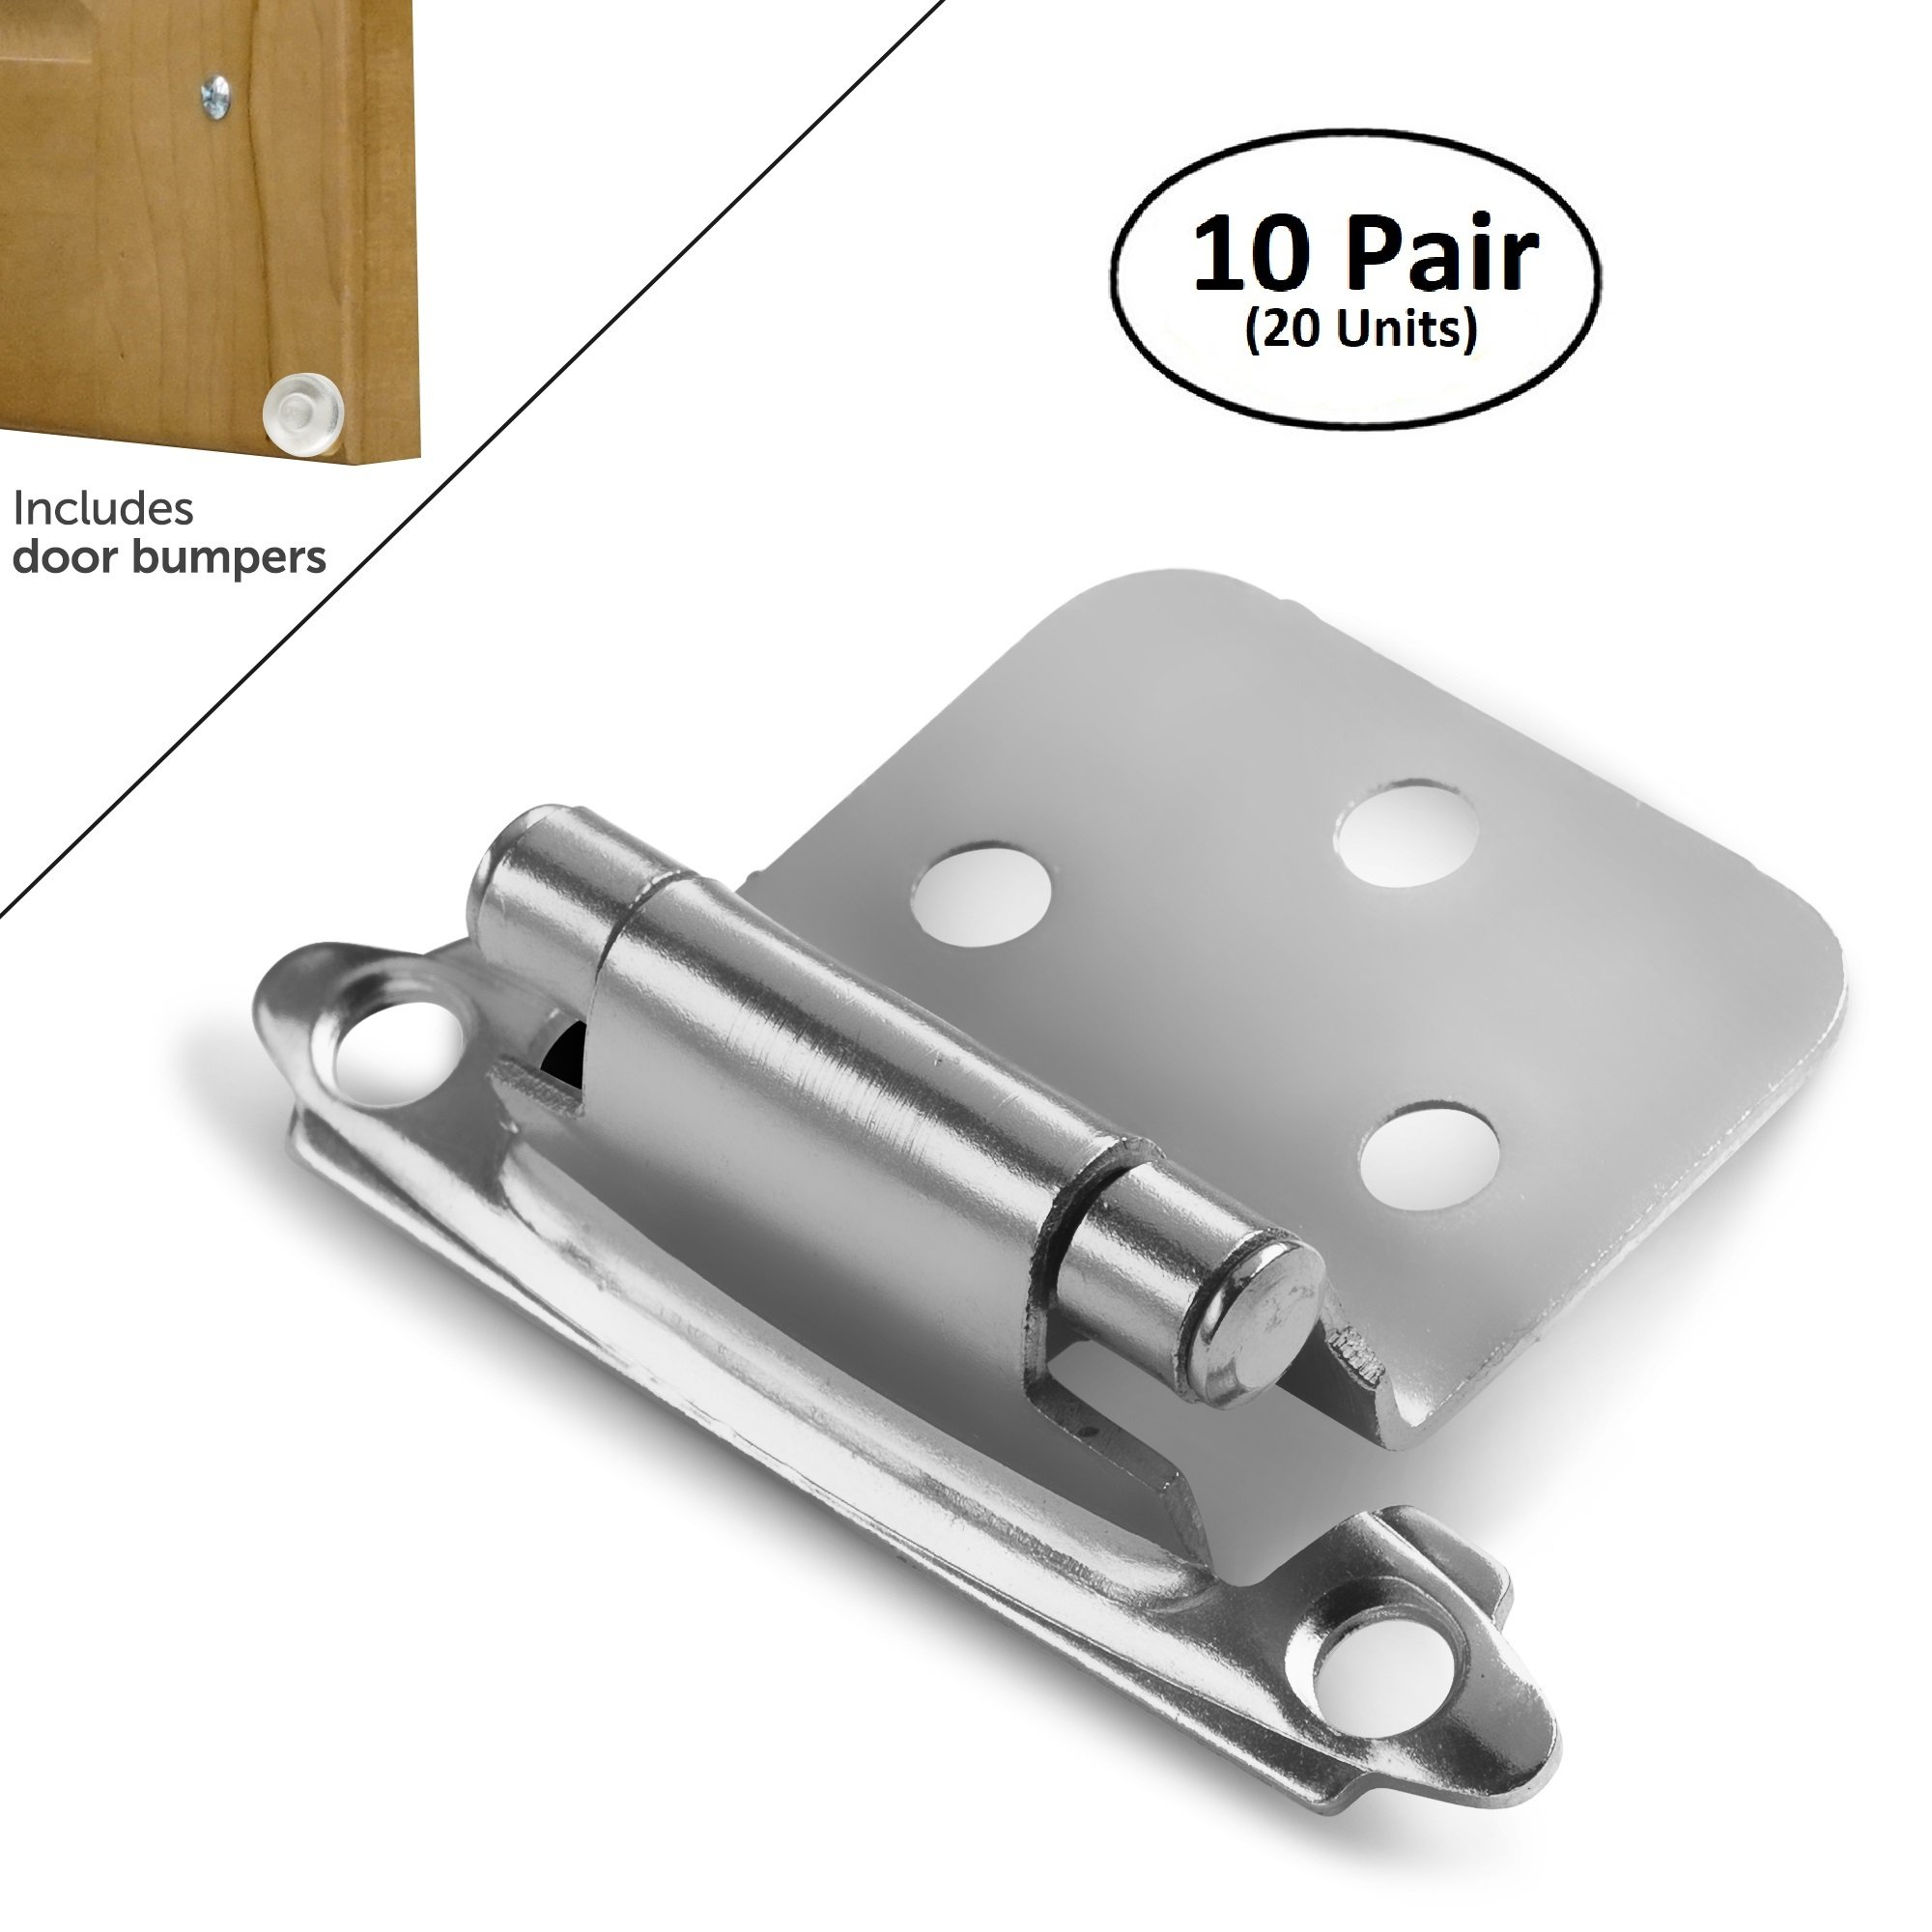 Berlin Modisch Overlay Cabinet Hinge 10 Pair (20 Units) Self-Closing Decorative, Face Mount, for Variable Overlay Kitchen Cabinet Doors Satin Nickel Finish, with Sound Dampening Door Bumpers by Berlin Modisch (Image #1)